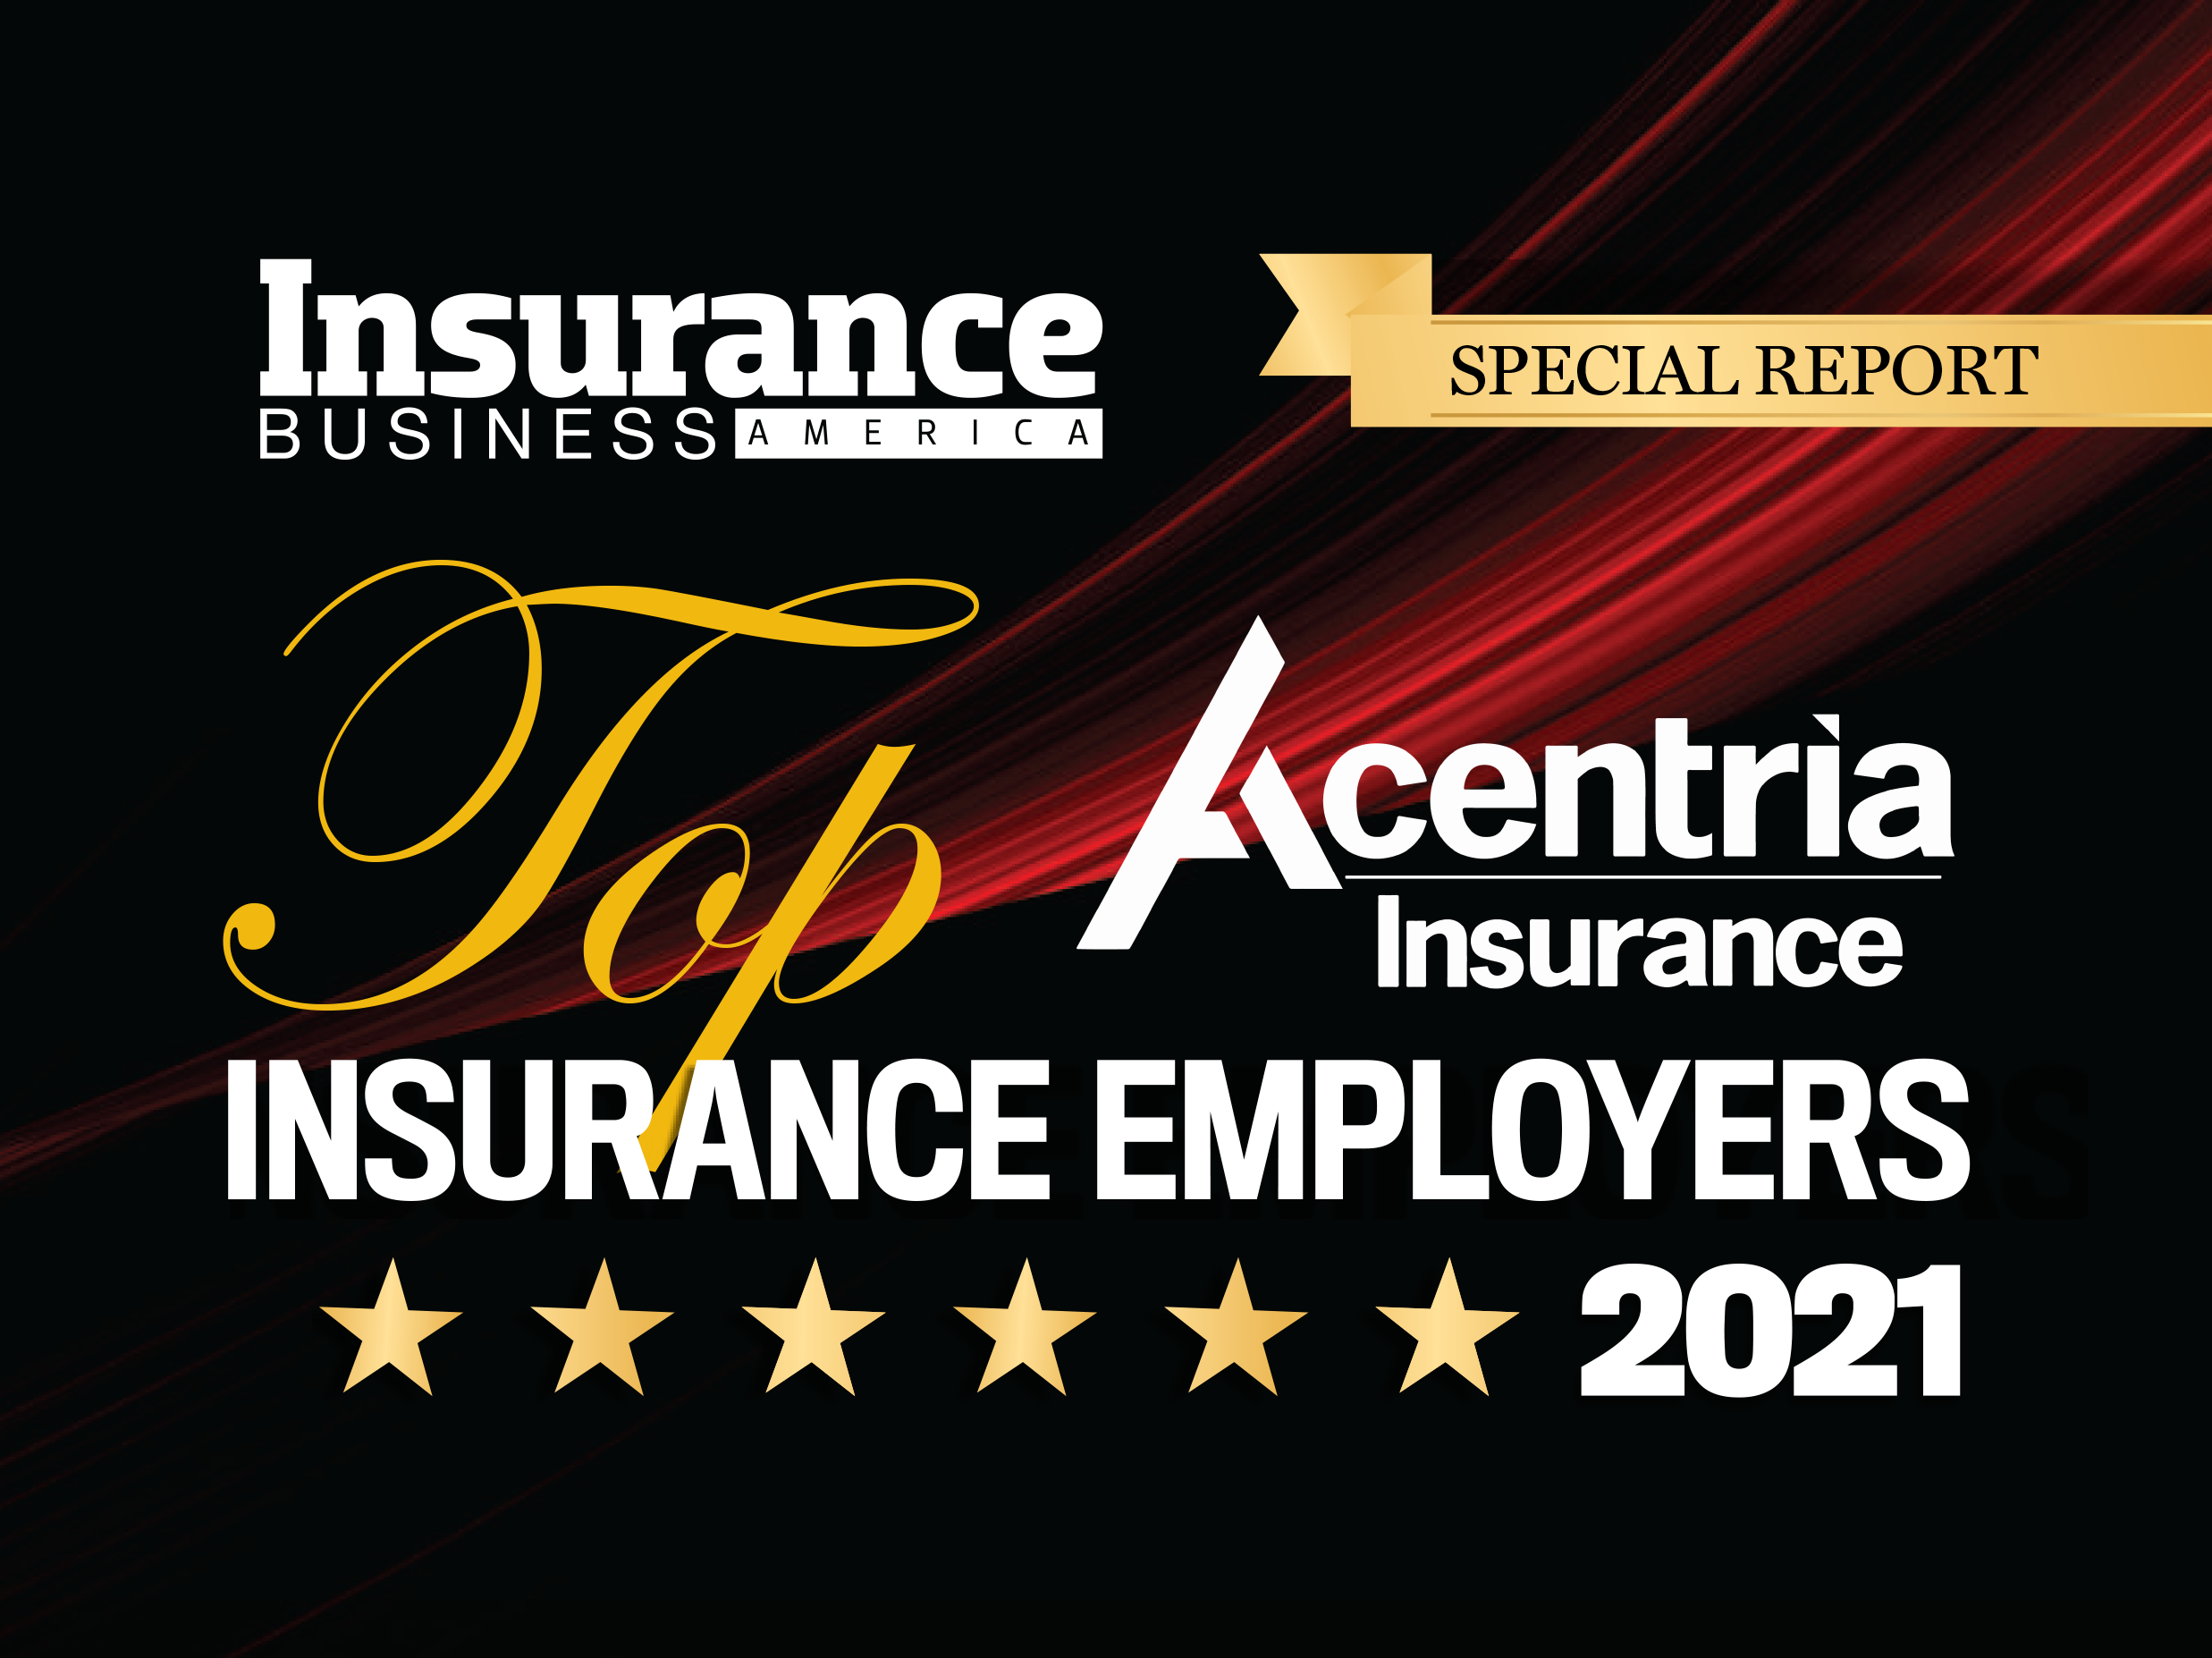 Acentria Insurance is a Top Insurance Employer